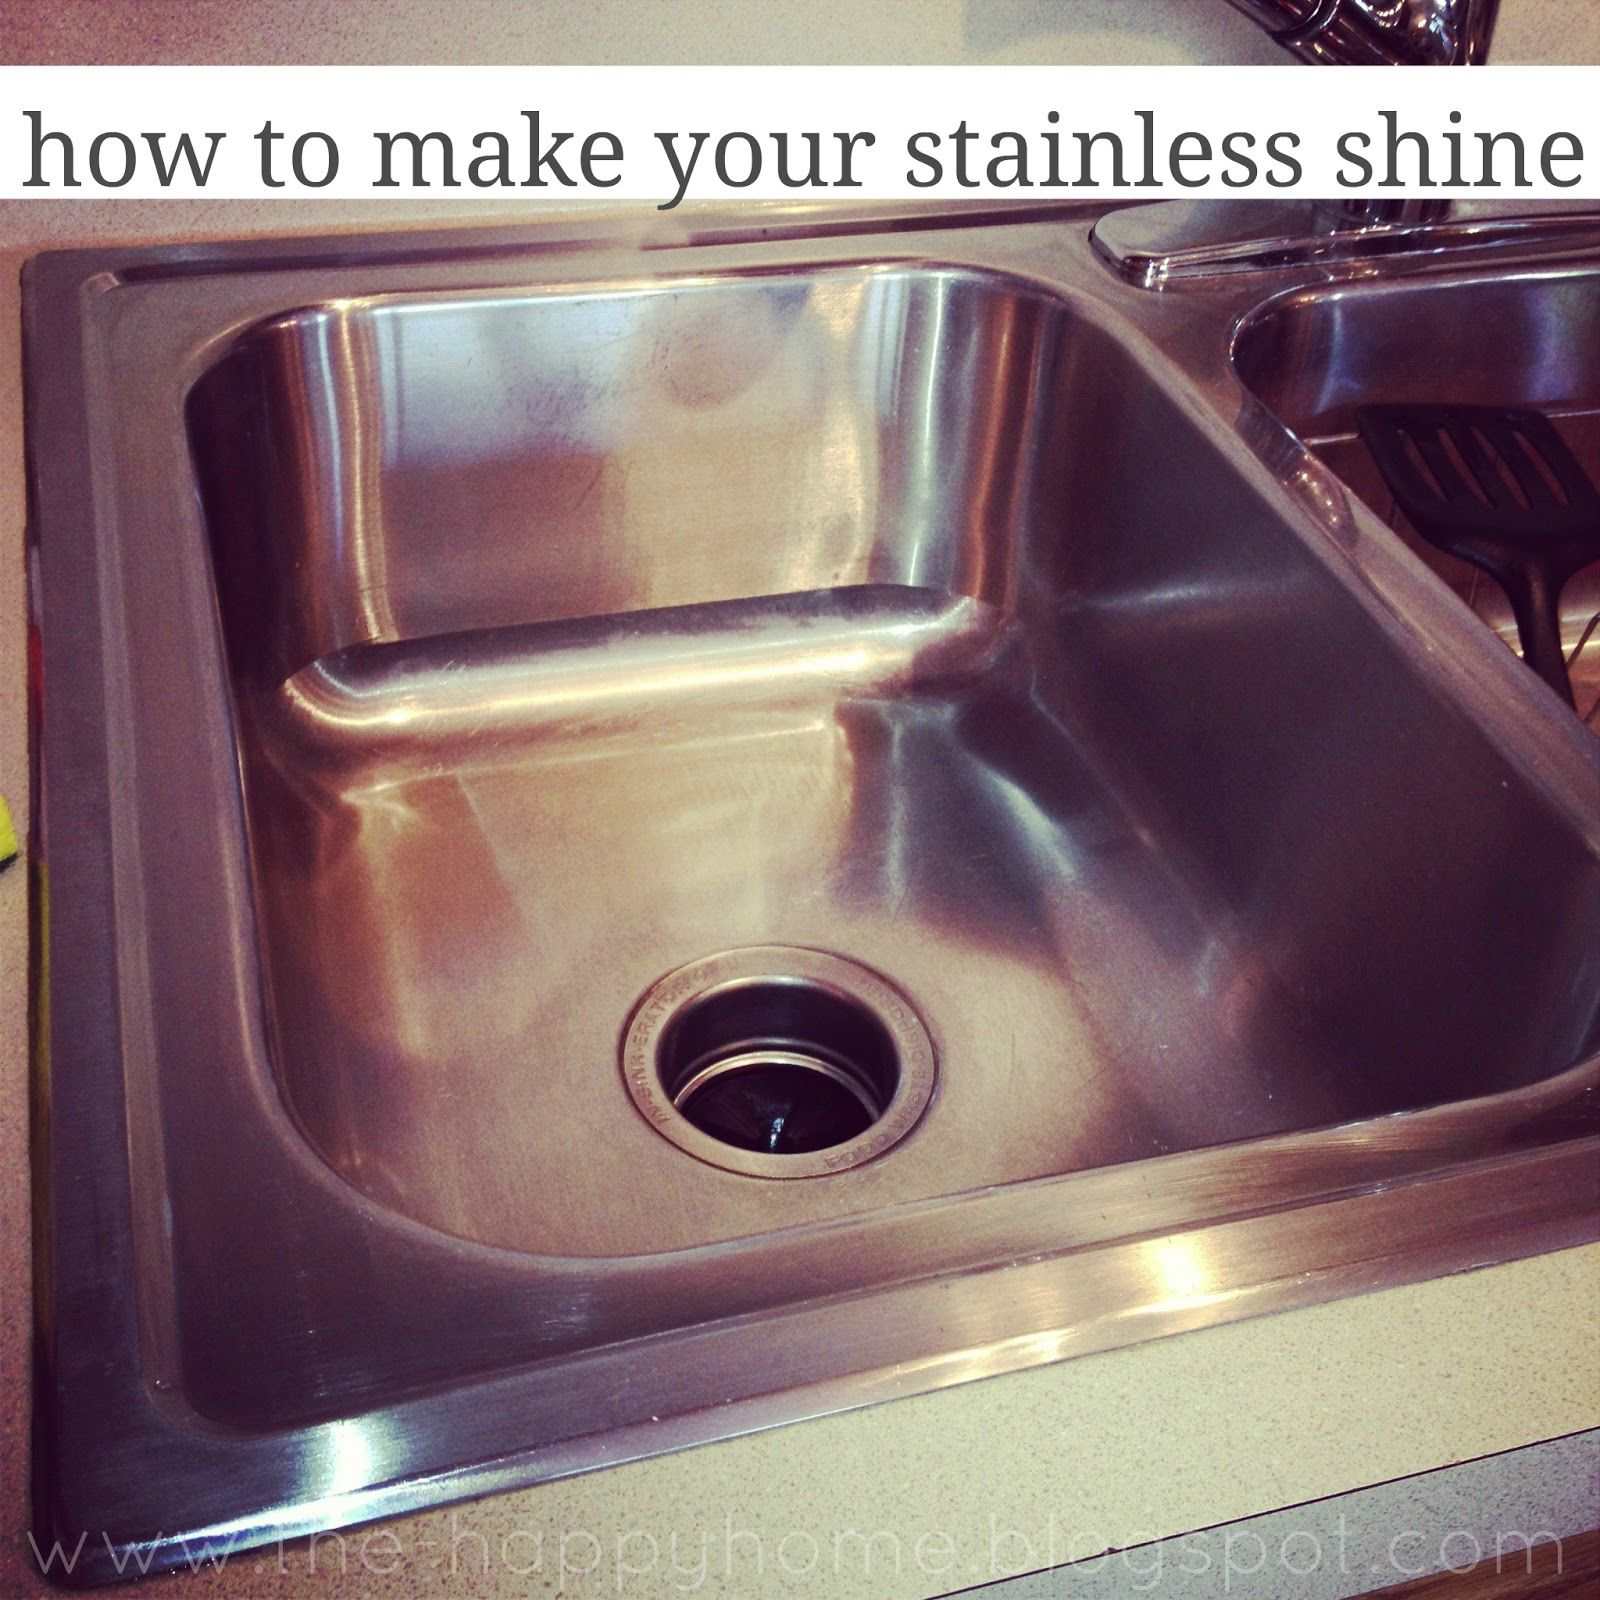 How To Make Your Stainless Shine Household Cleaning Tips Cleaning Hacks Diy Cleaning Products